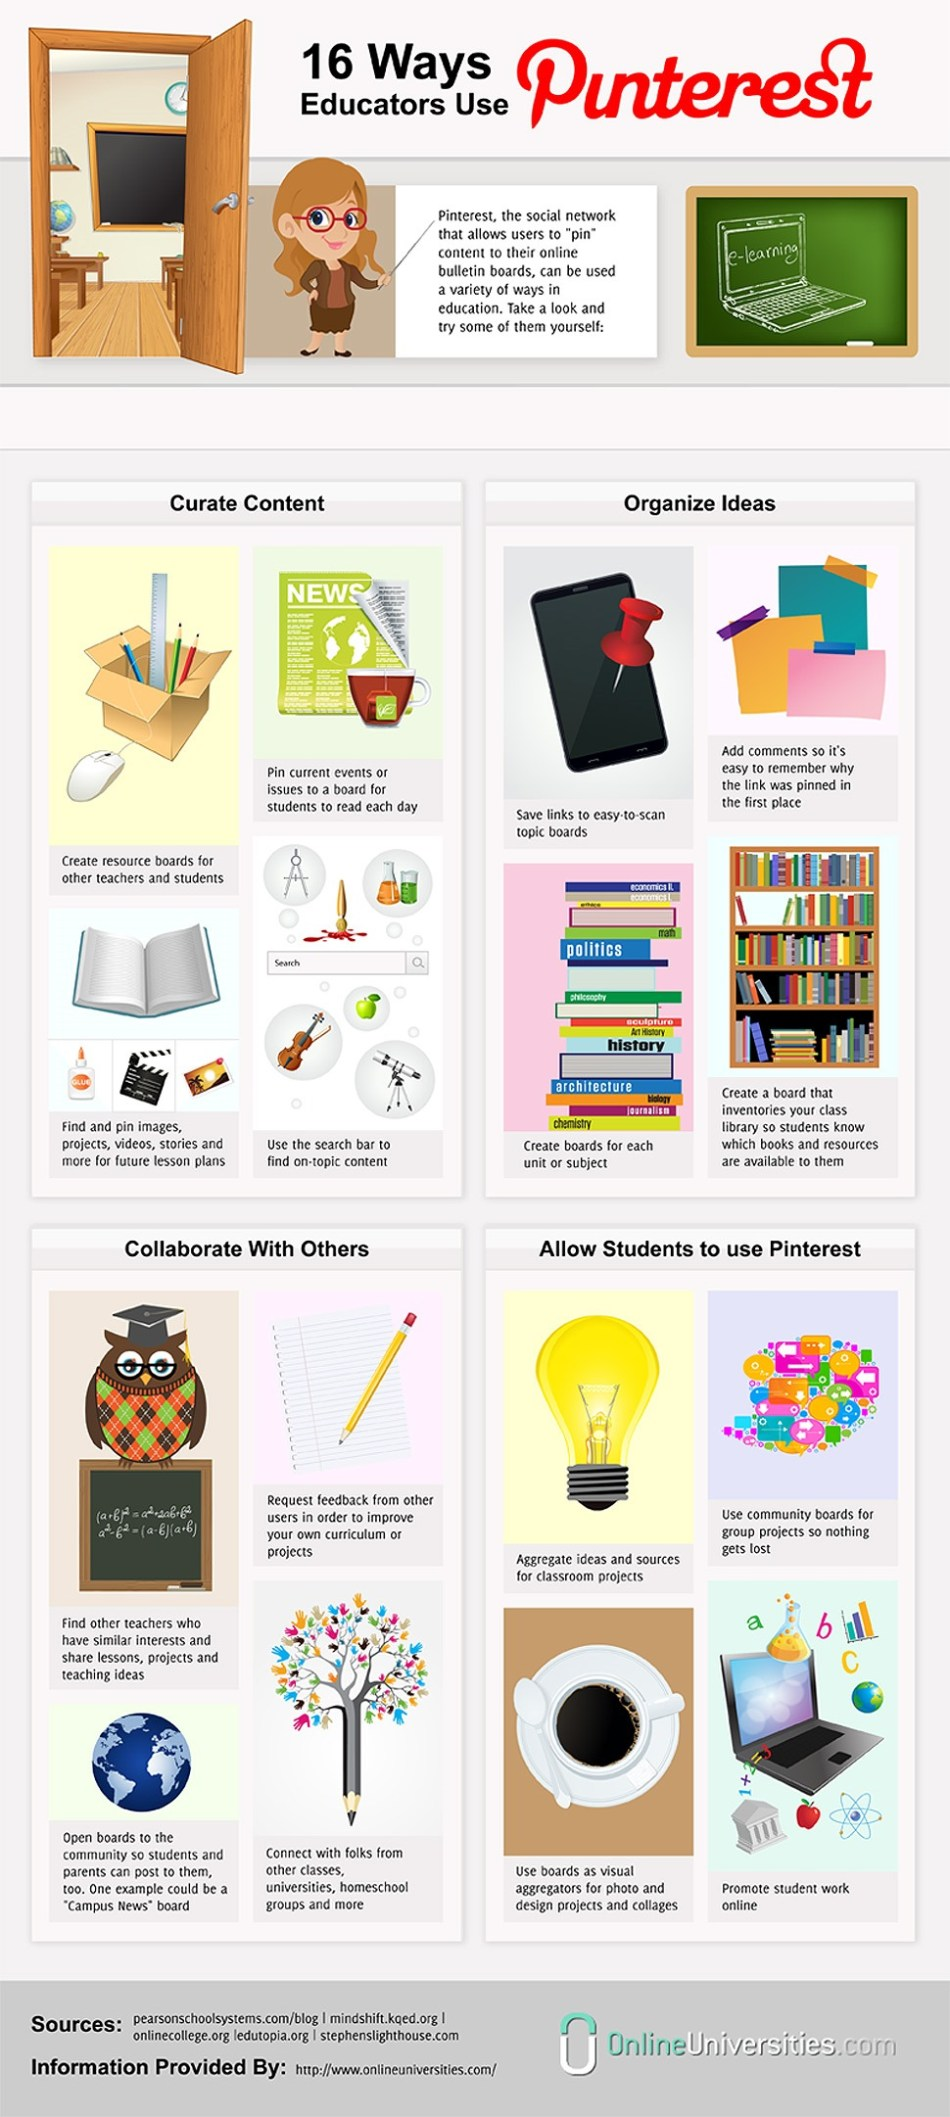 how educators use pinterest 16 Ways How Educators Use Pinterest [Infographic]